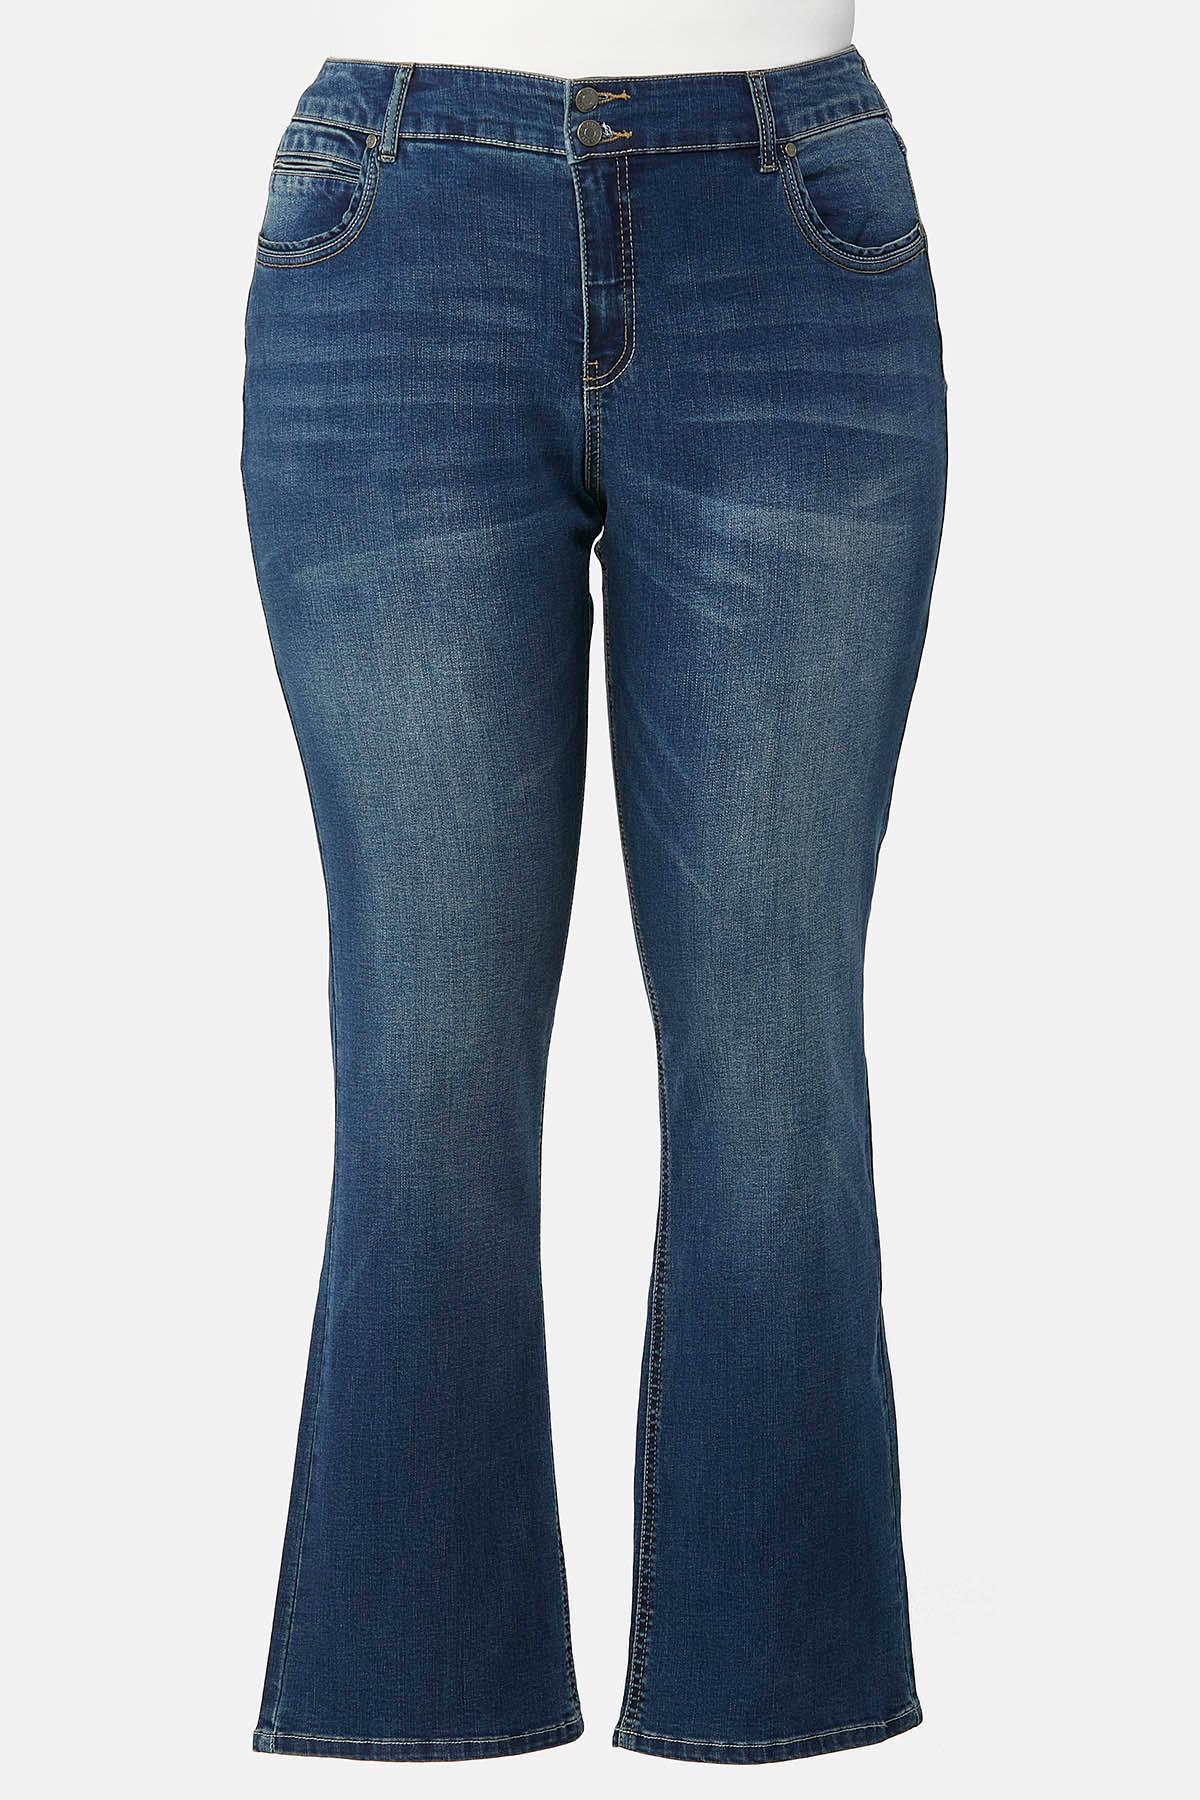 Plus Size Slimming Bootcut Jeans